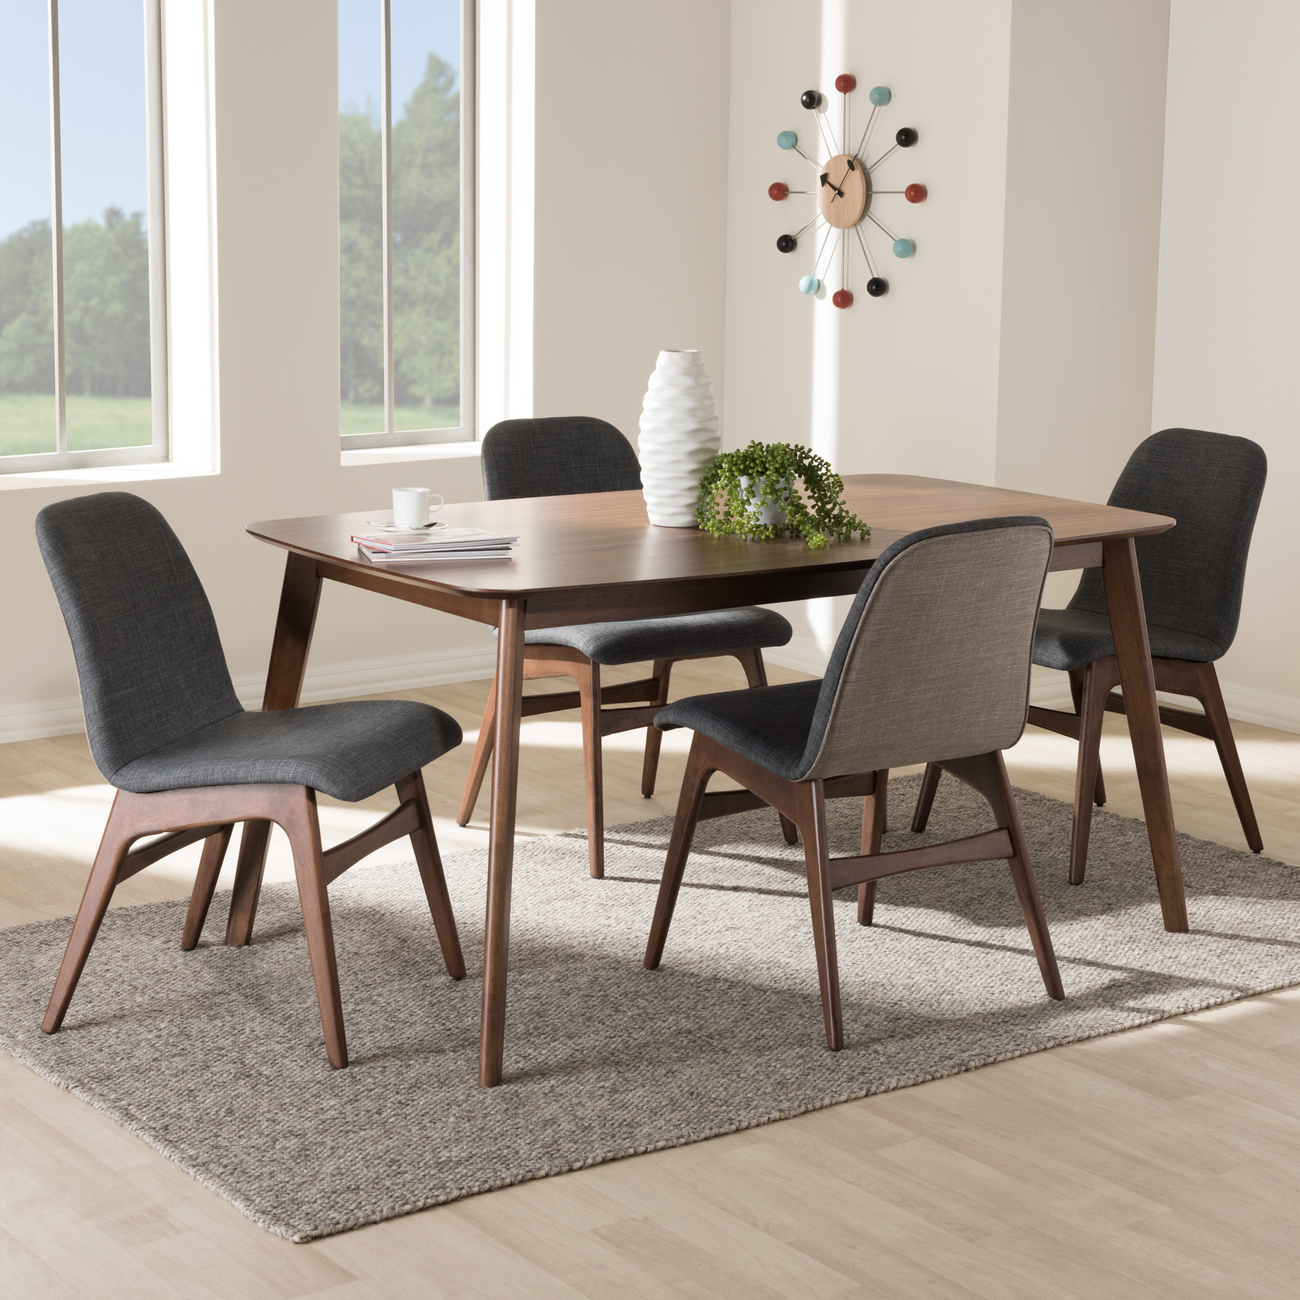 Wholesale Interiors Upholstered Walnut Dining Set